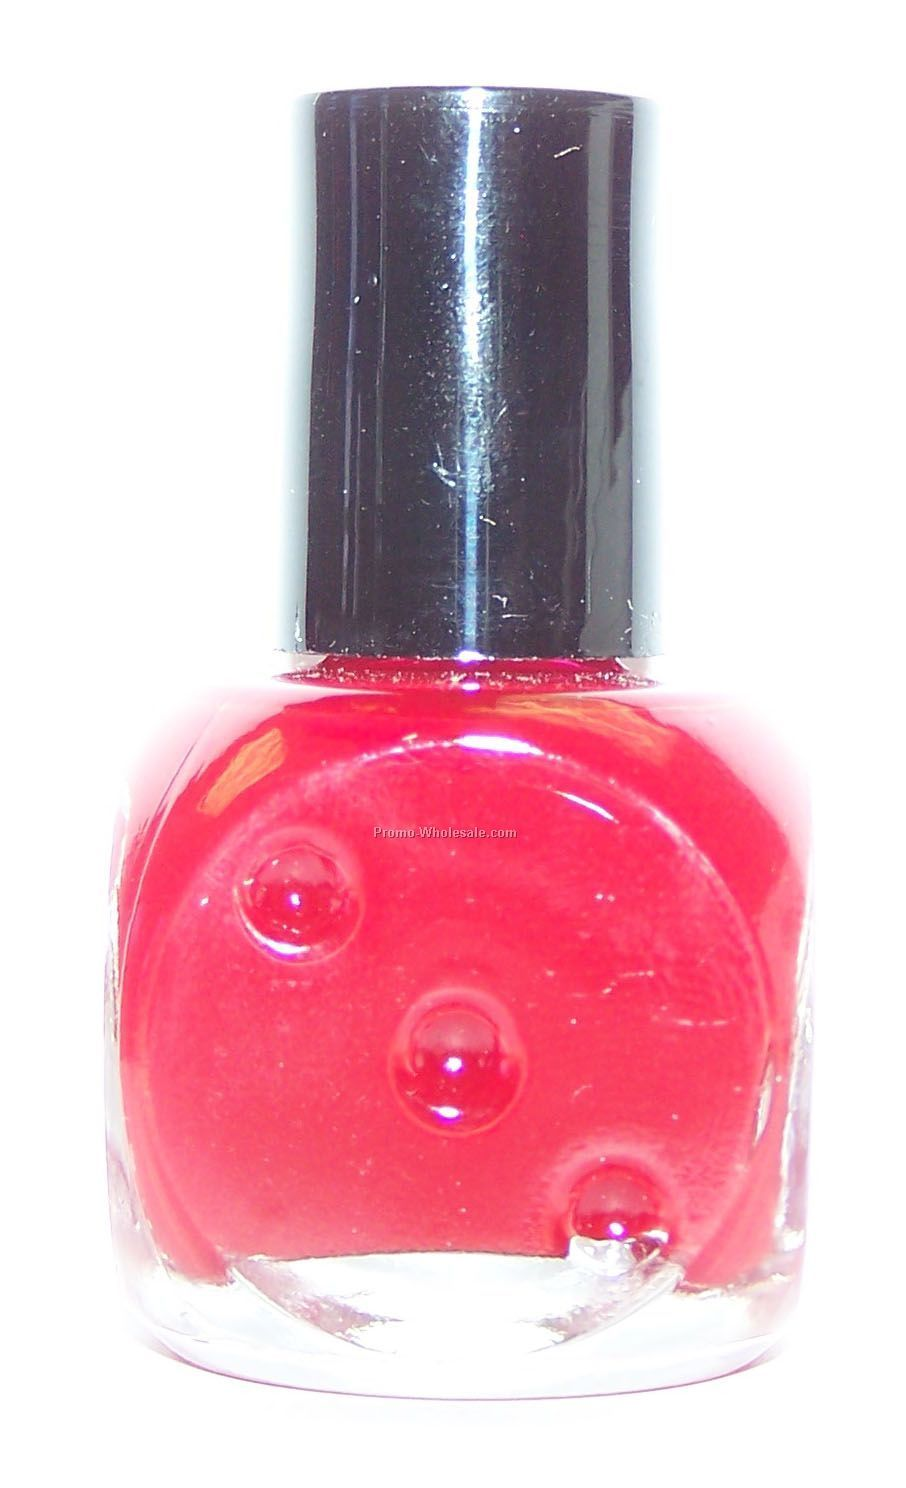 1/2 Fl. Oz. Dice Shaped Nail Polish Bottle